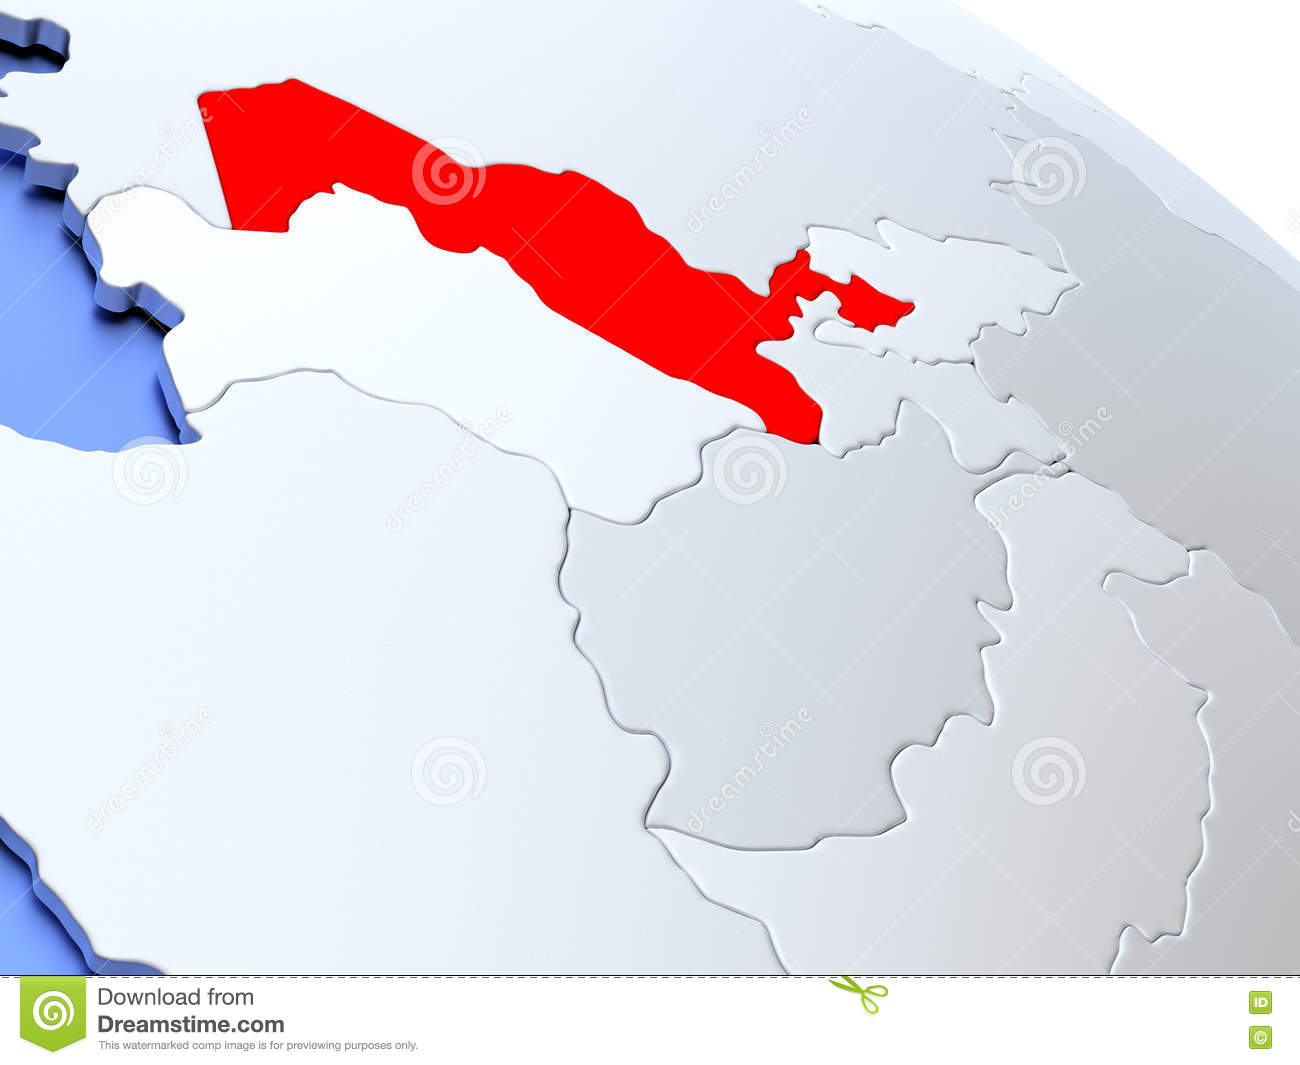 Uzbekistan On World Map Stock Illustration Illustration Of Uzbekistani 78584104